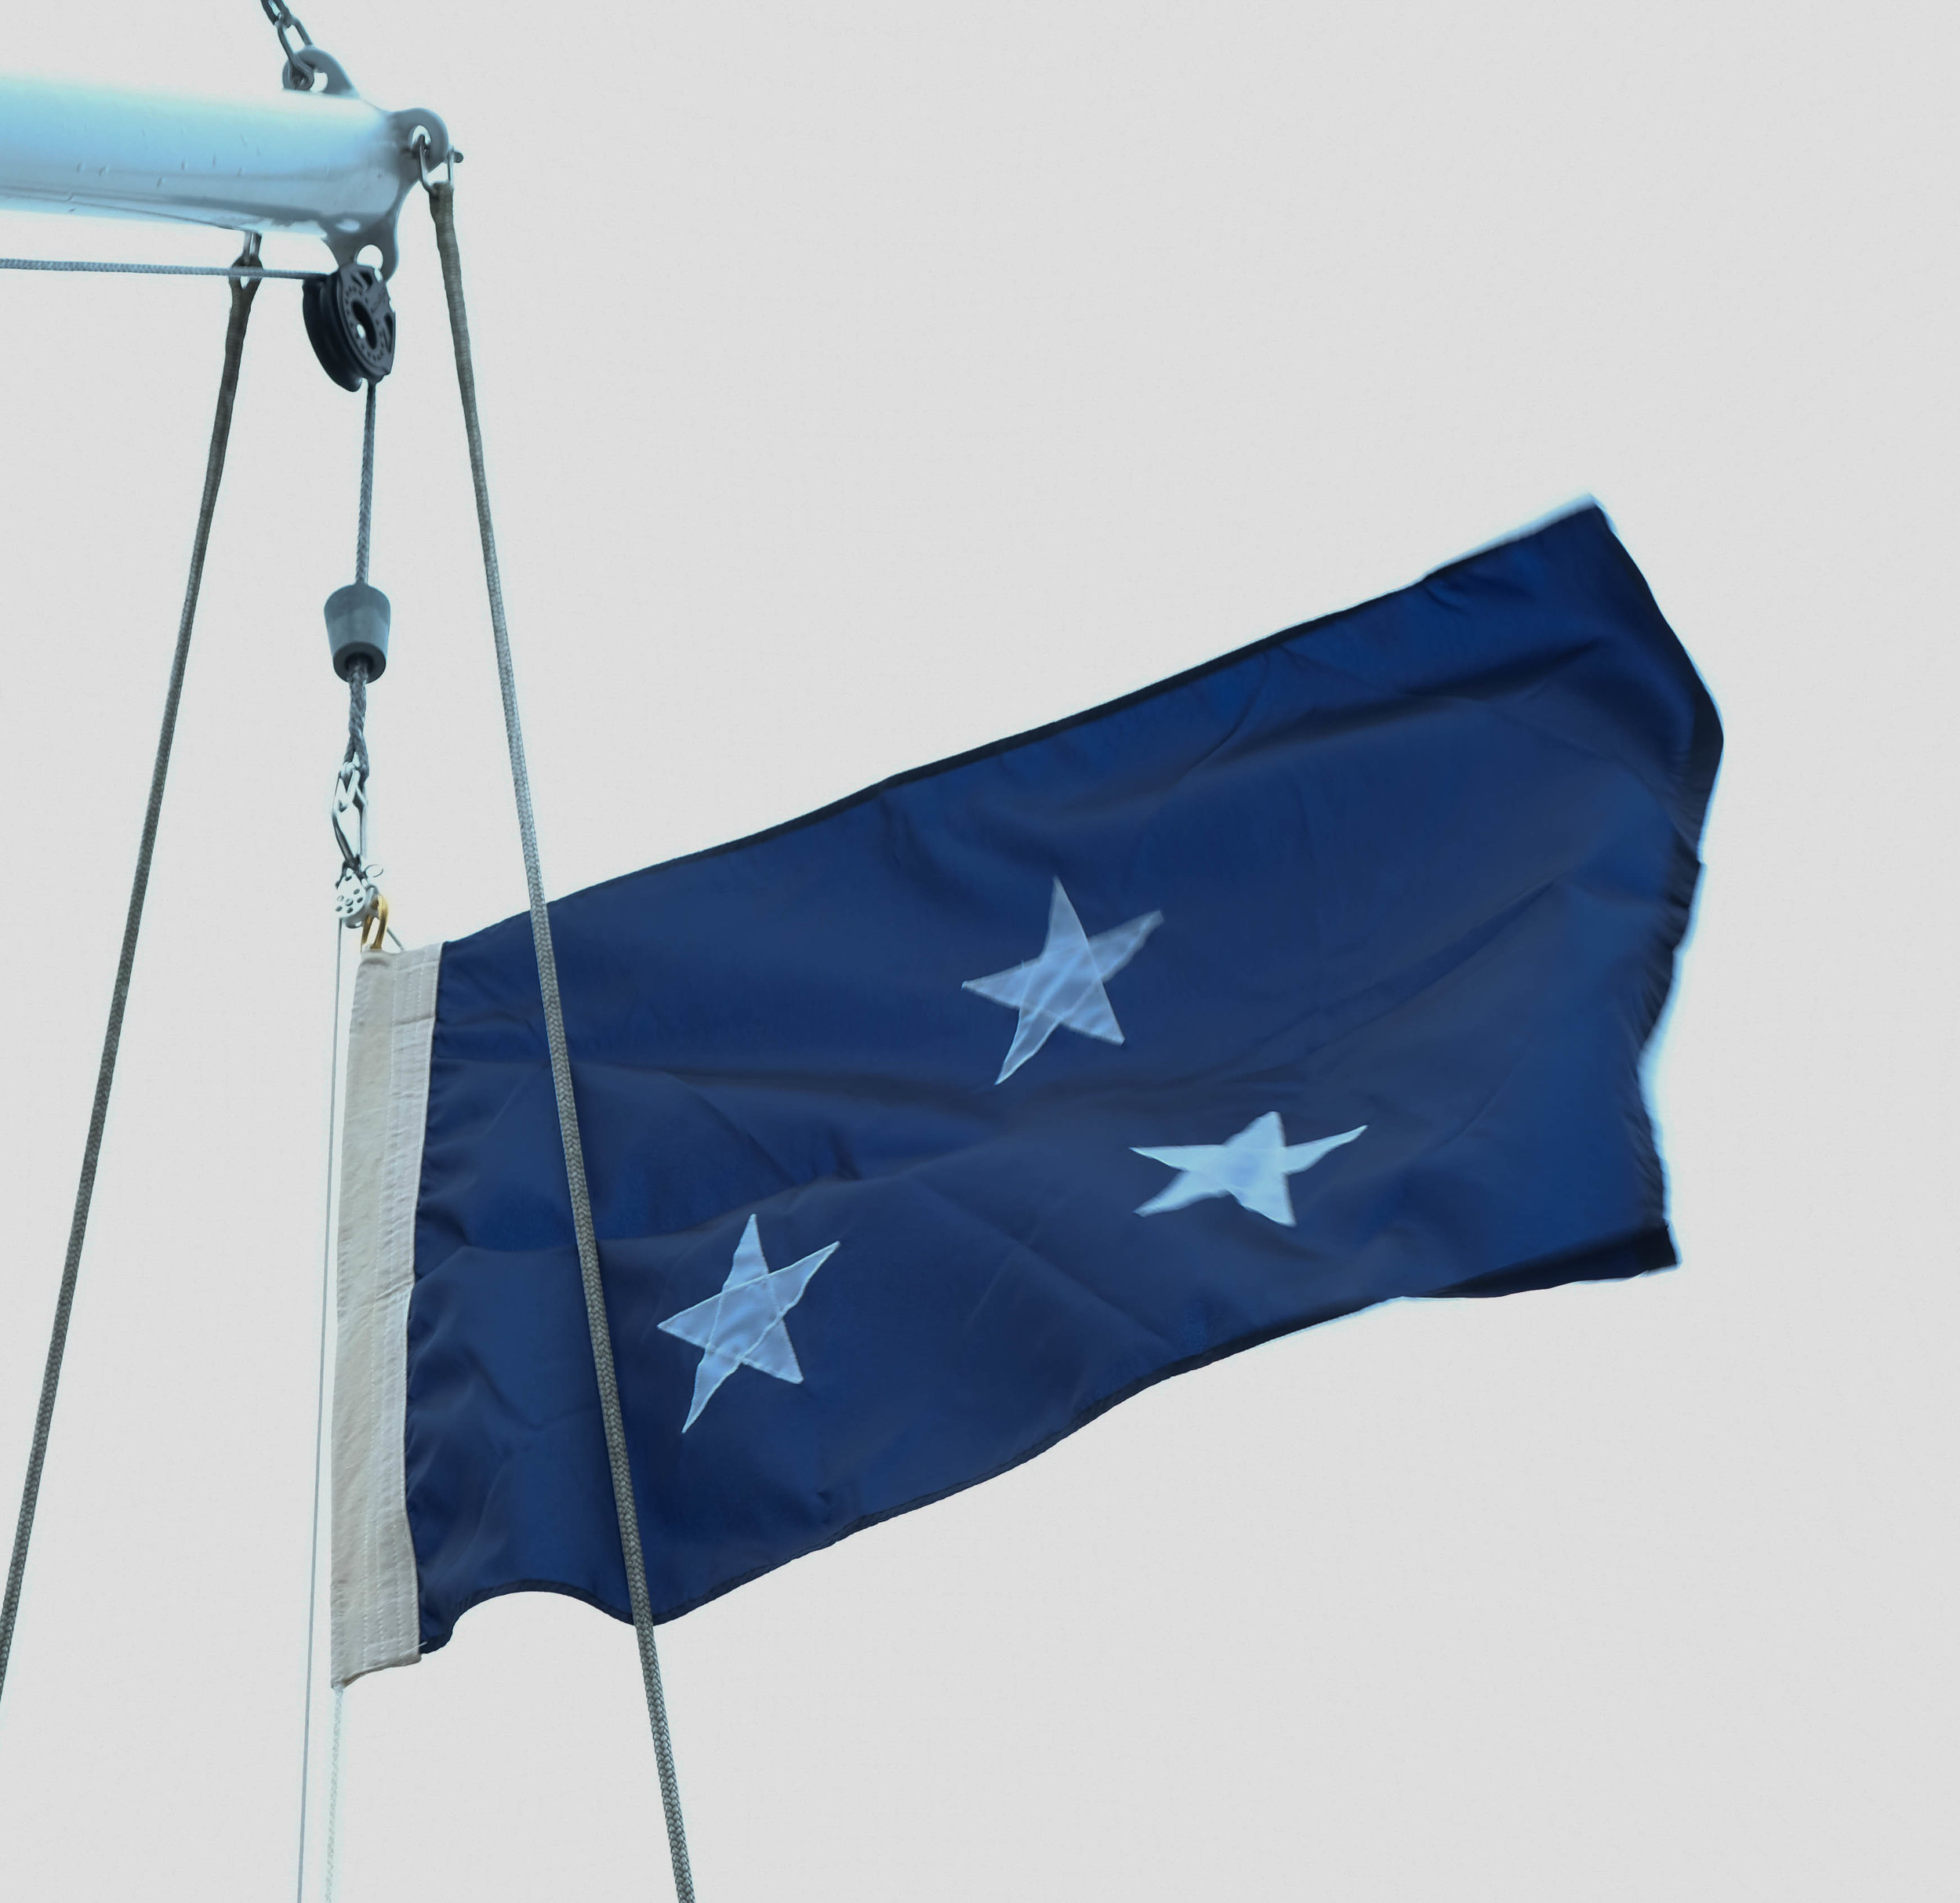 Wish we could keep this flag, and fly it whenever we arrive in a Navy town. Sure to open doors!